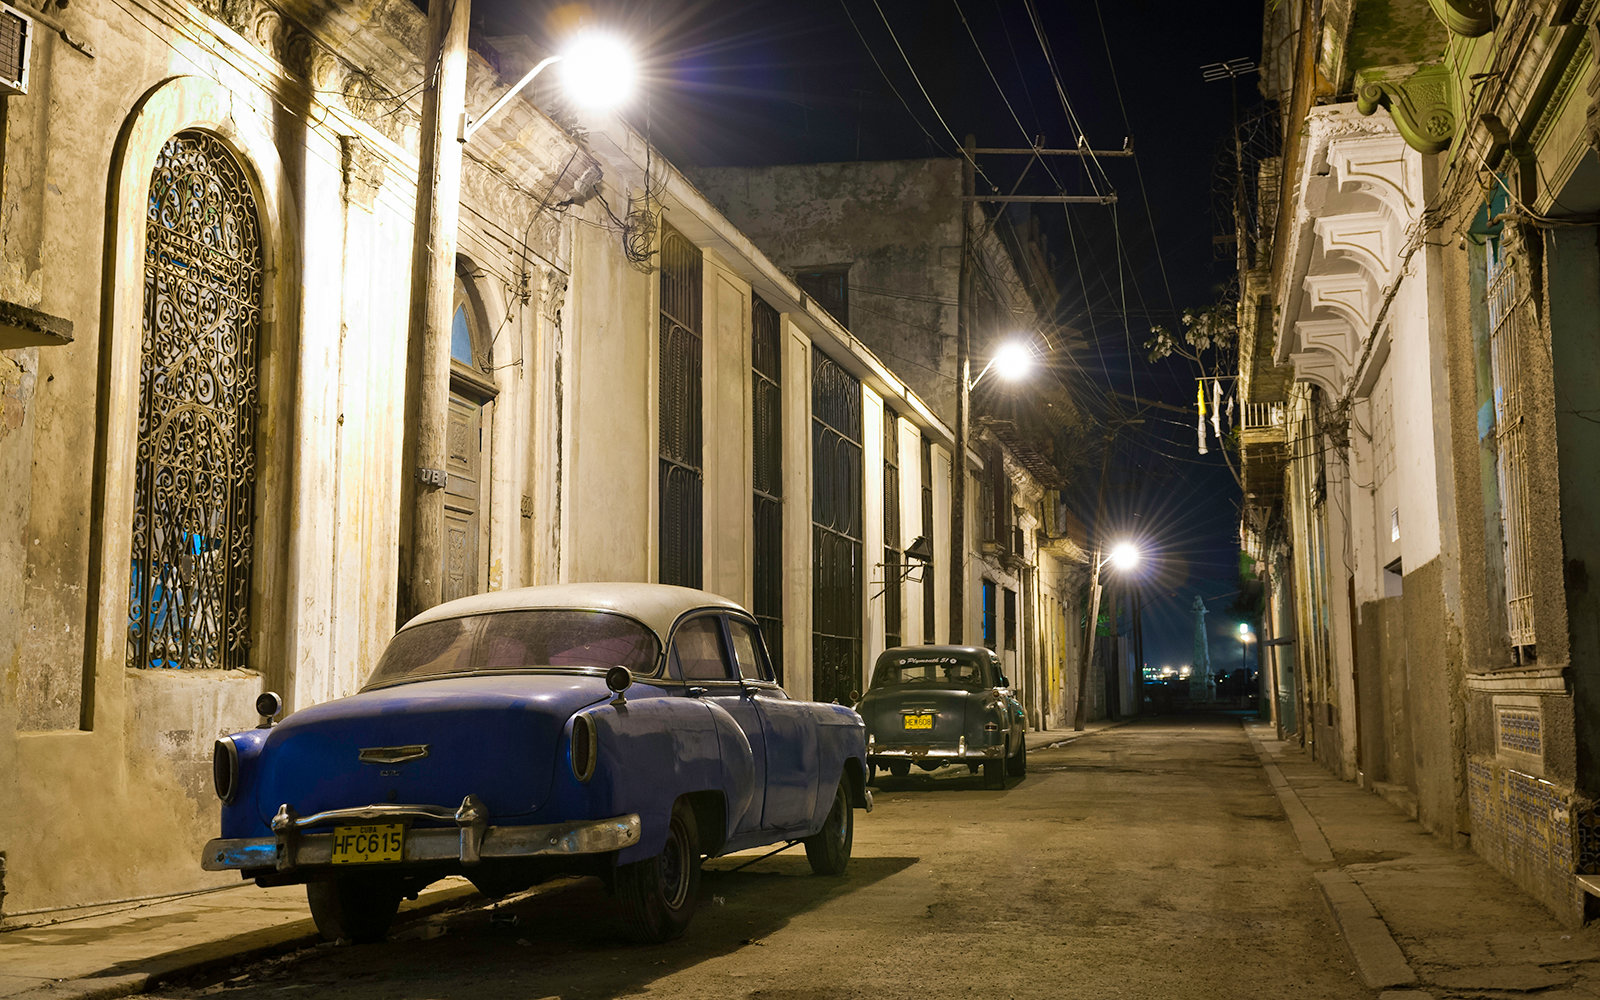 CARIBBEAN, CIUDAD DE LA HABANA, CUBA - 2011/01/10: Vintage cars parked in the street at night. (Photo by Jorge Fernández/LightRocket via Getty Images)